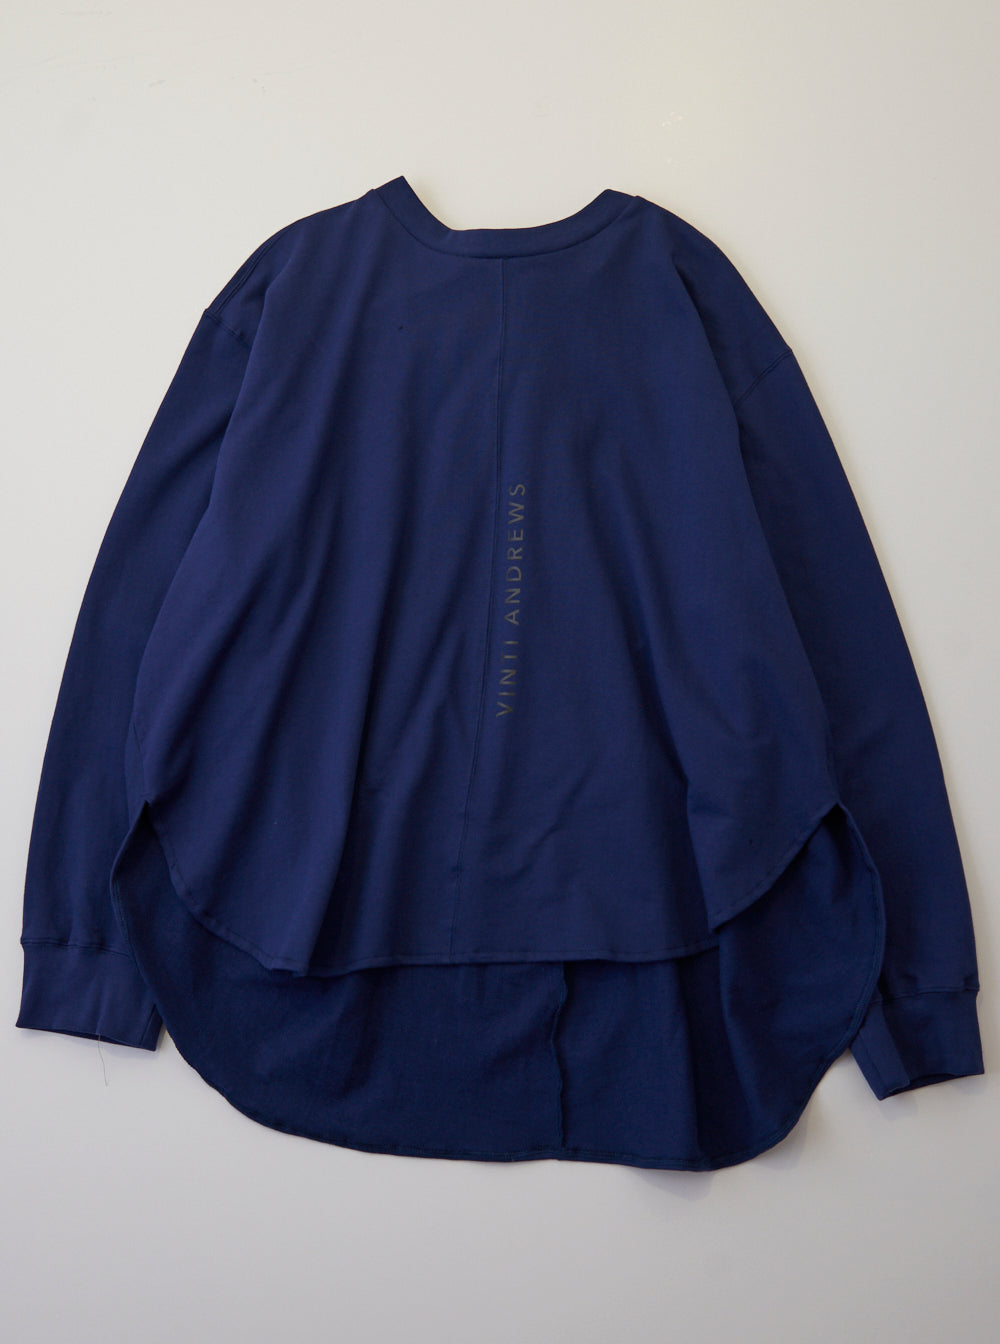 Vinti Andrews Drape Sweatshirt Navy